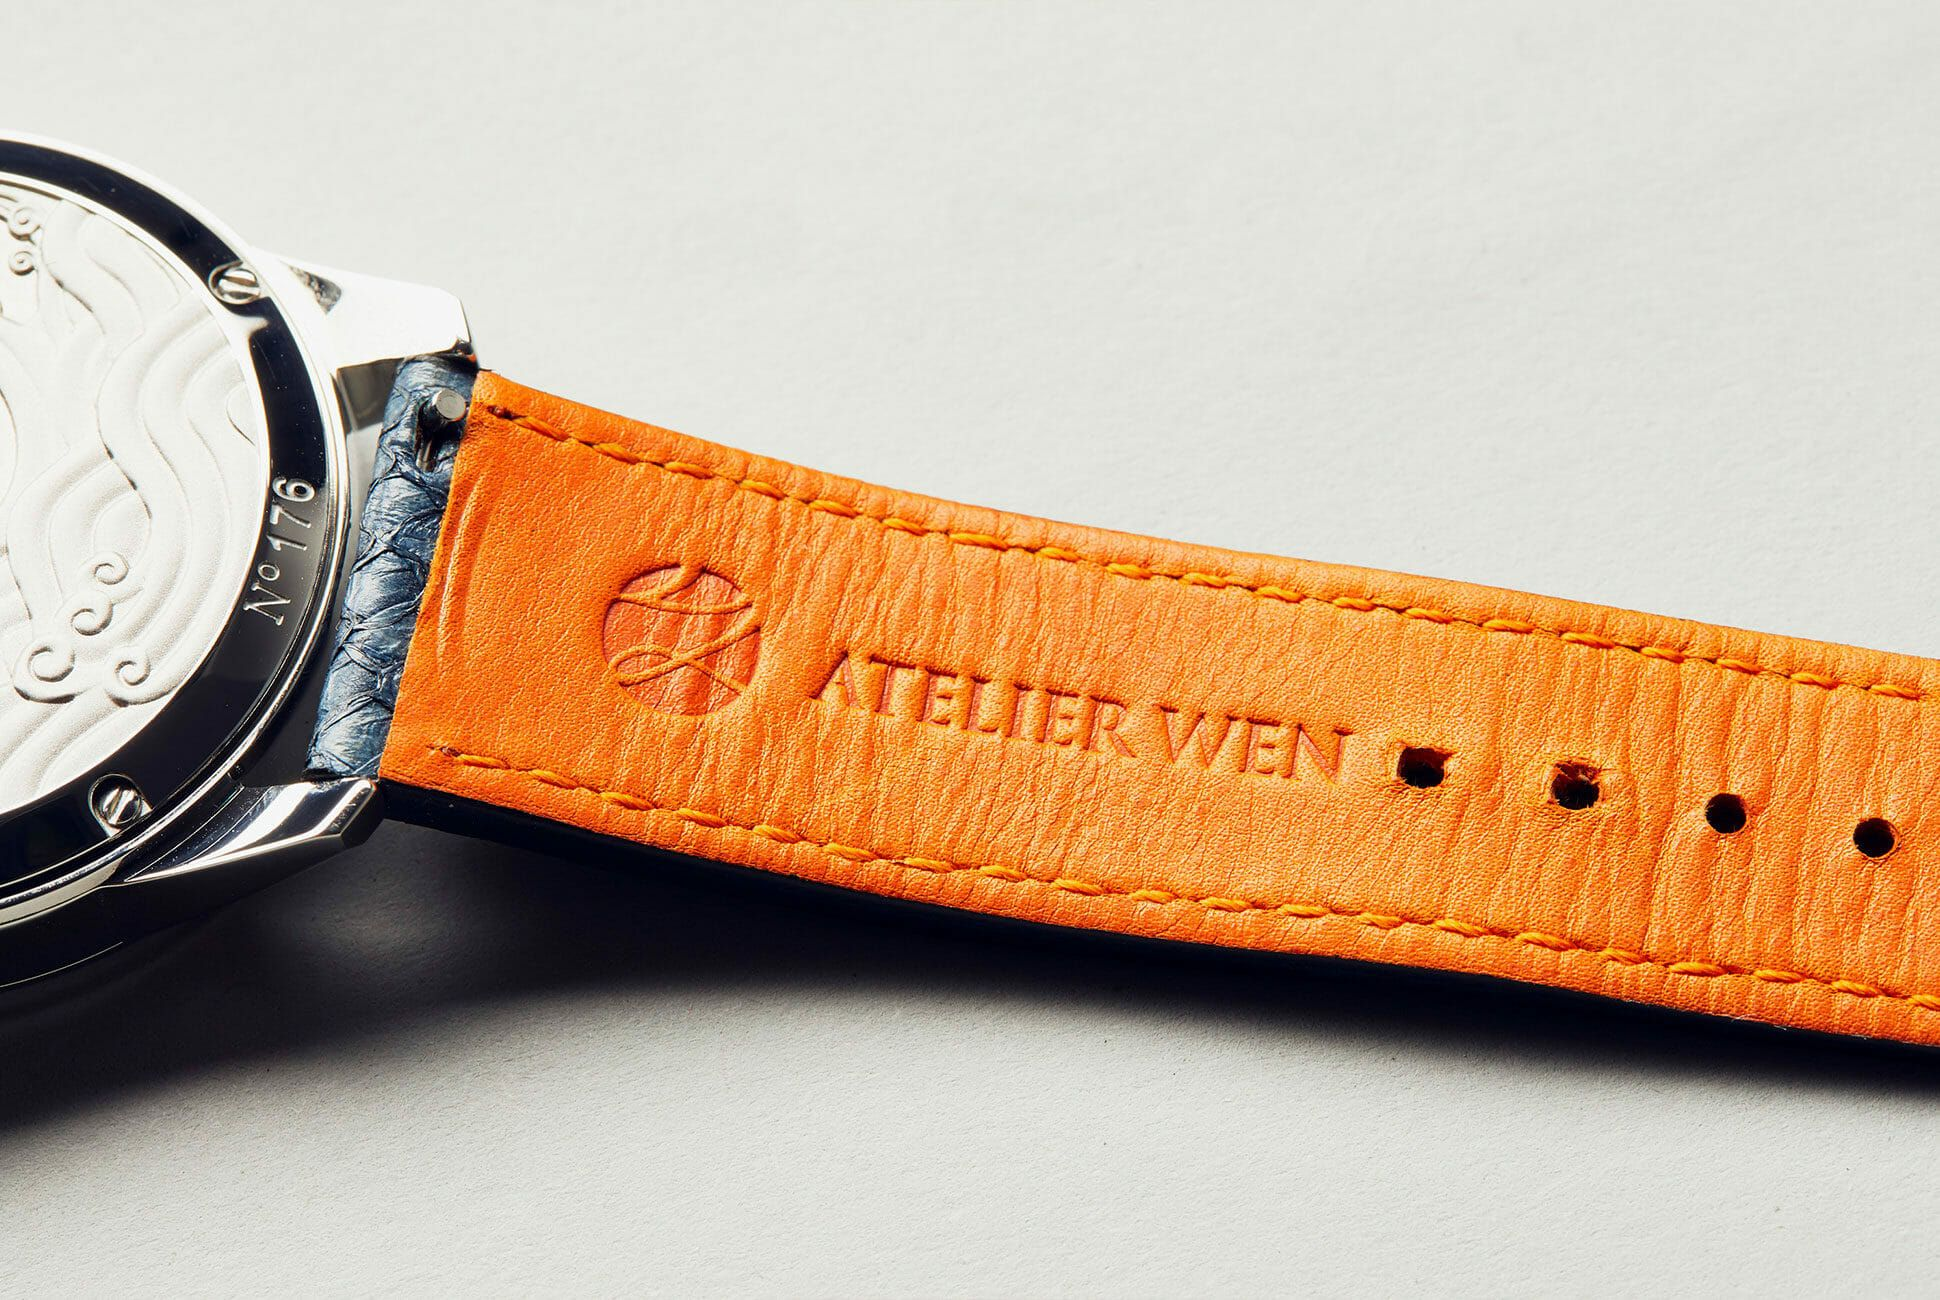 This-Affordable-Automatic-Watch-Has-One-of-the-Most-Stunning-Dials-Weve-Seen-Gear-Patrol-slide-5